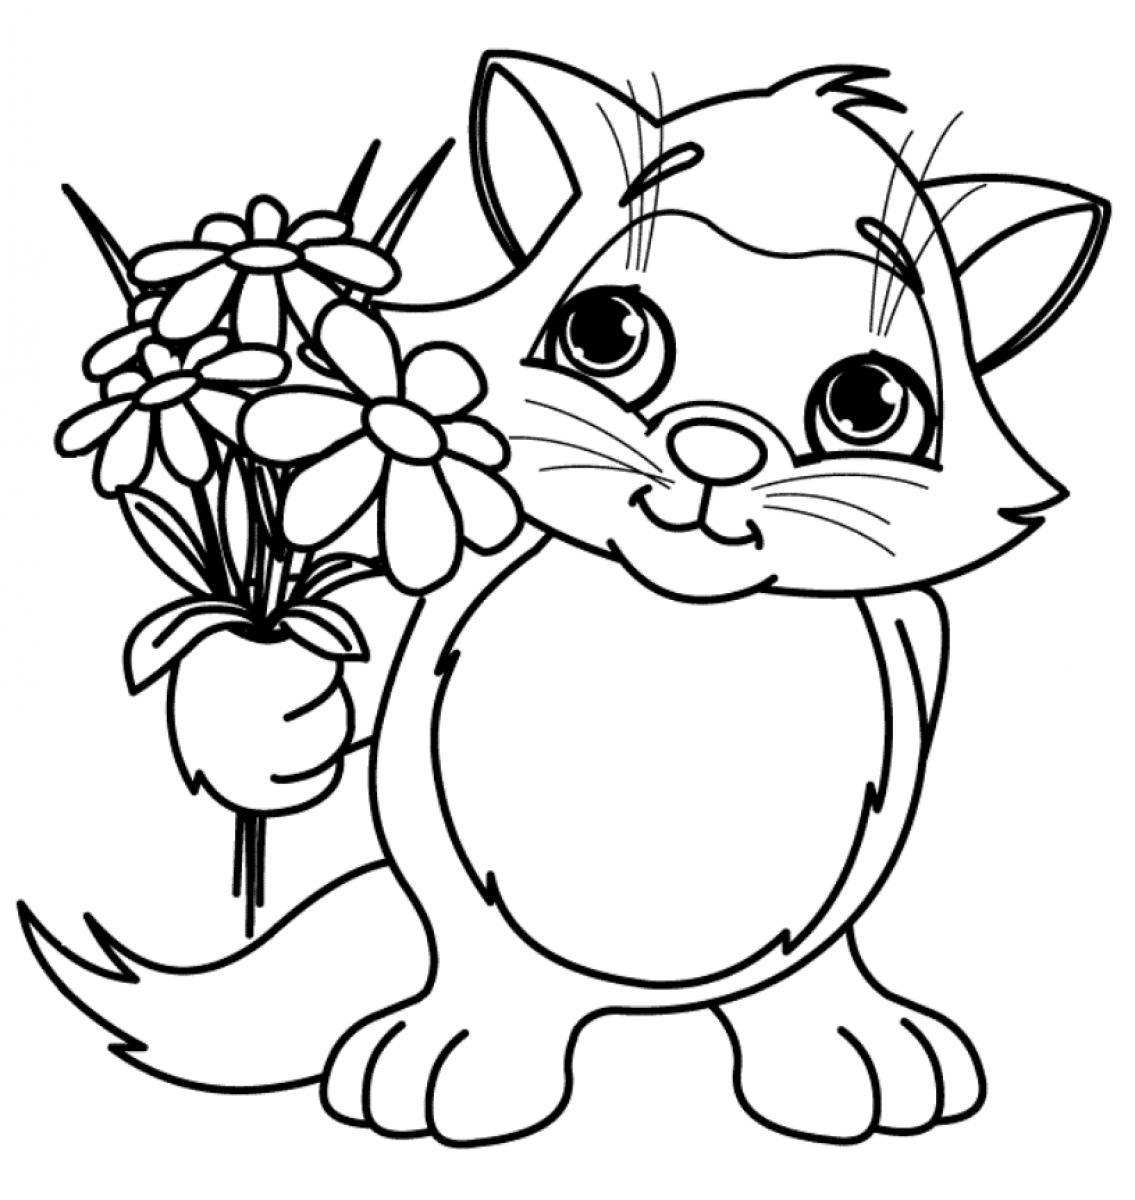 coloring pages flowers printable spring flower coloring pages to download and print for free flowers printable coloring pages